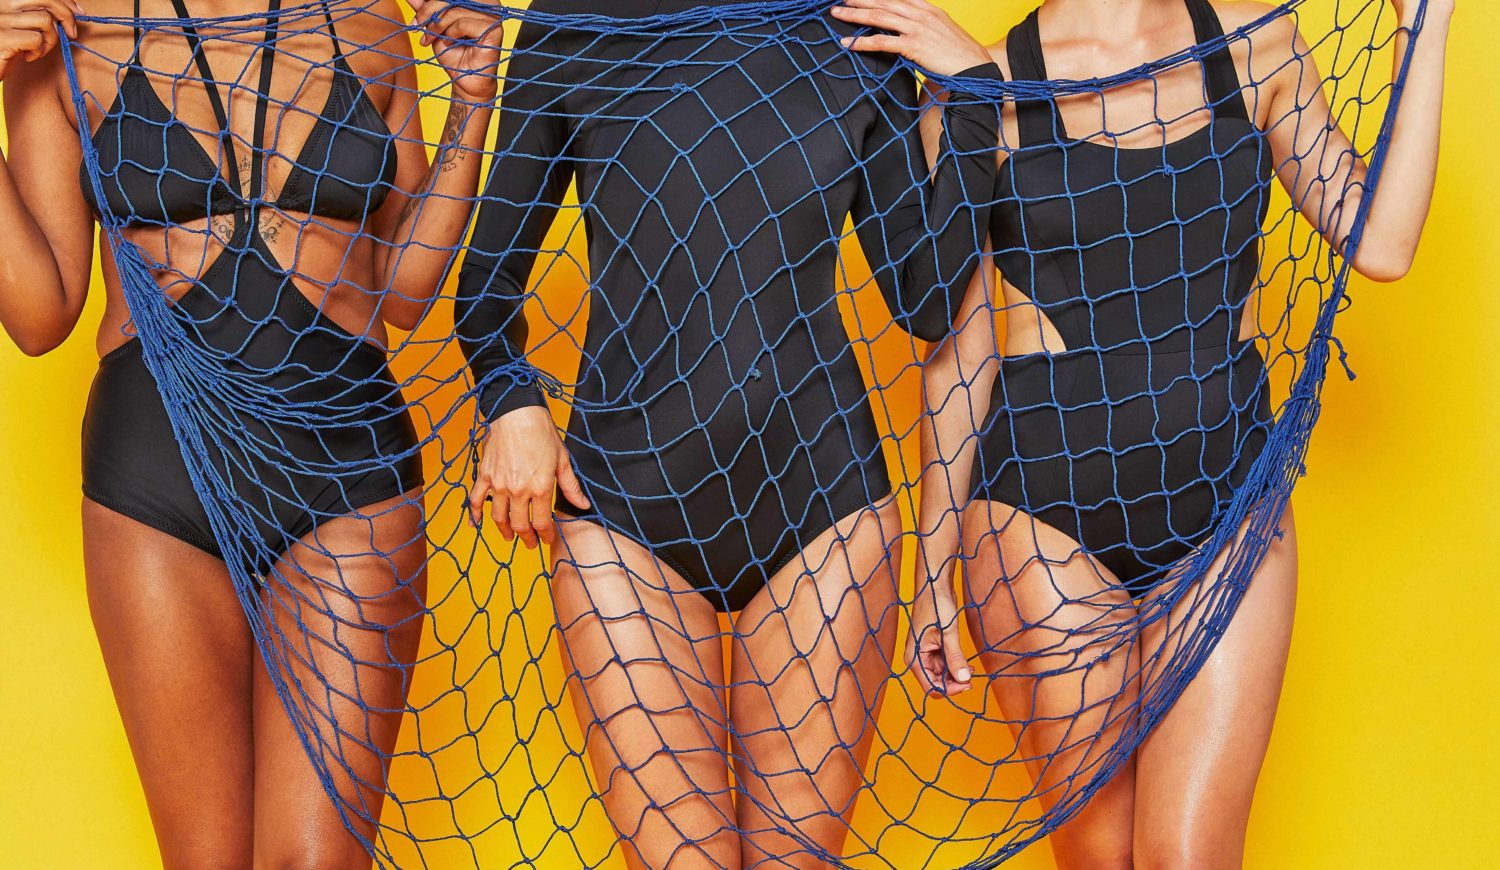 Three women standing in black swimsuits holding a blue fishing net on a yellow background